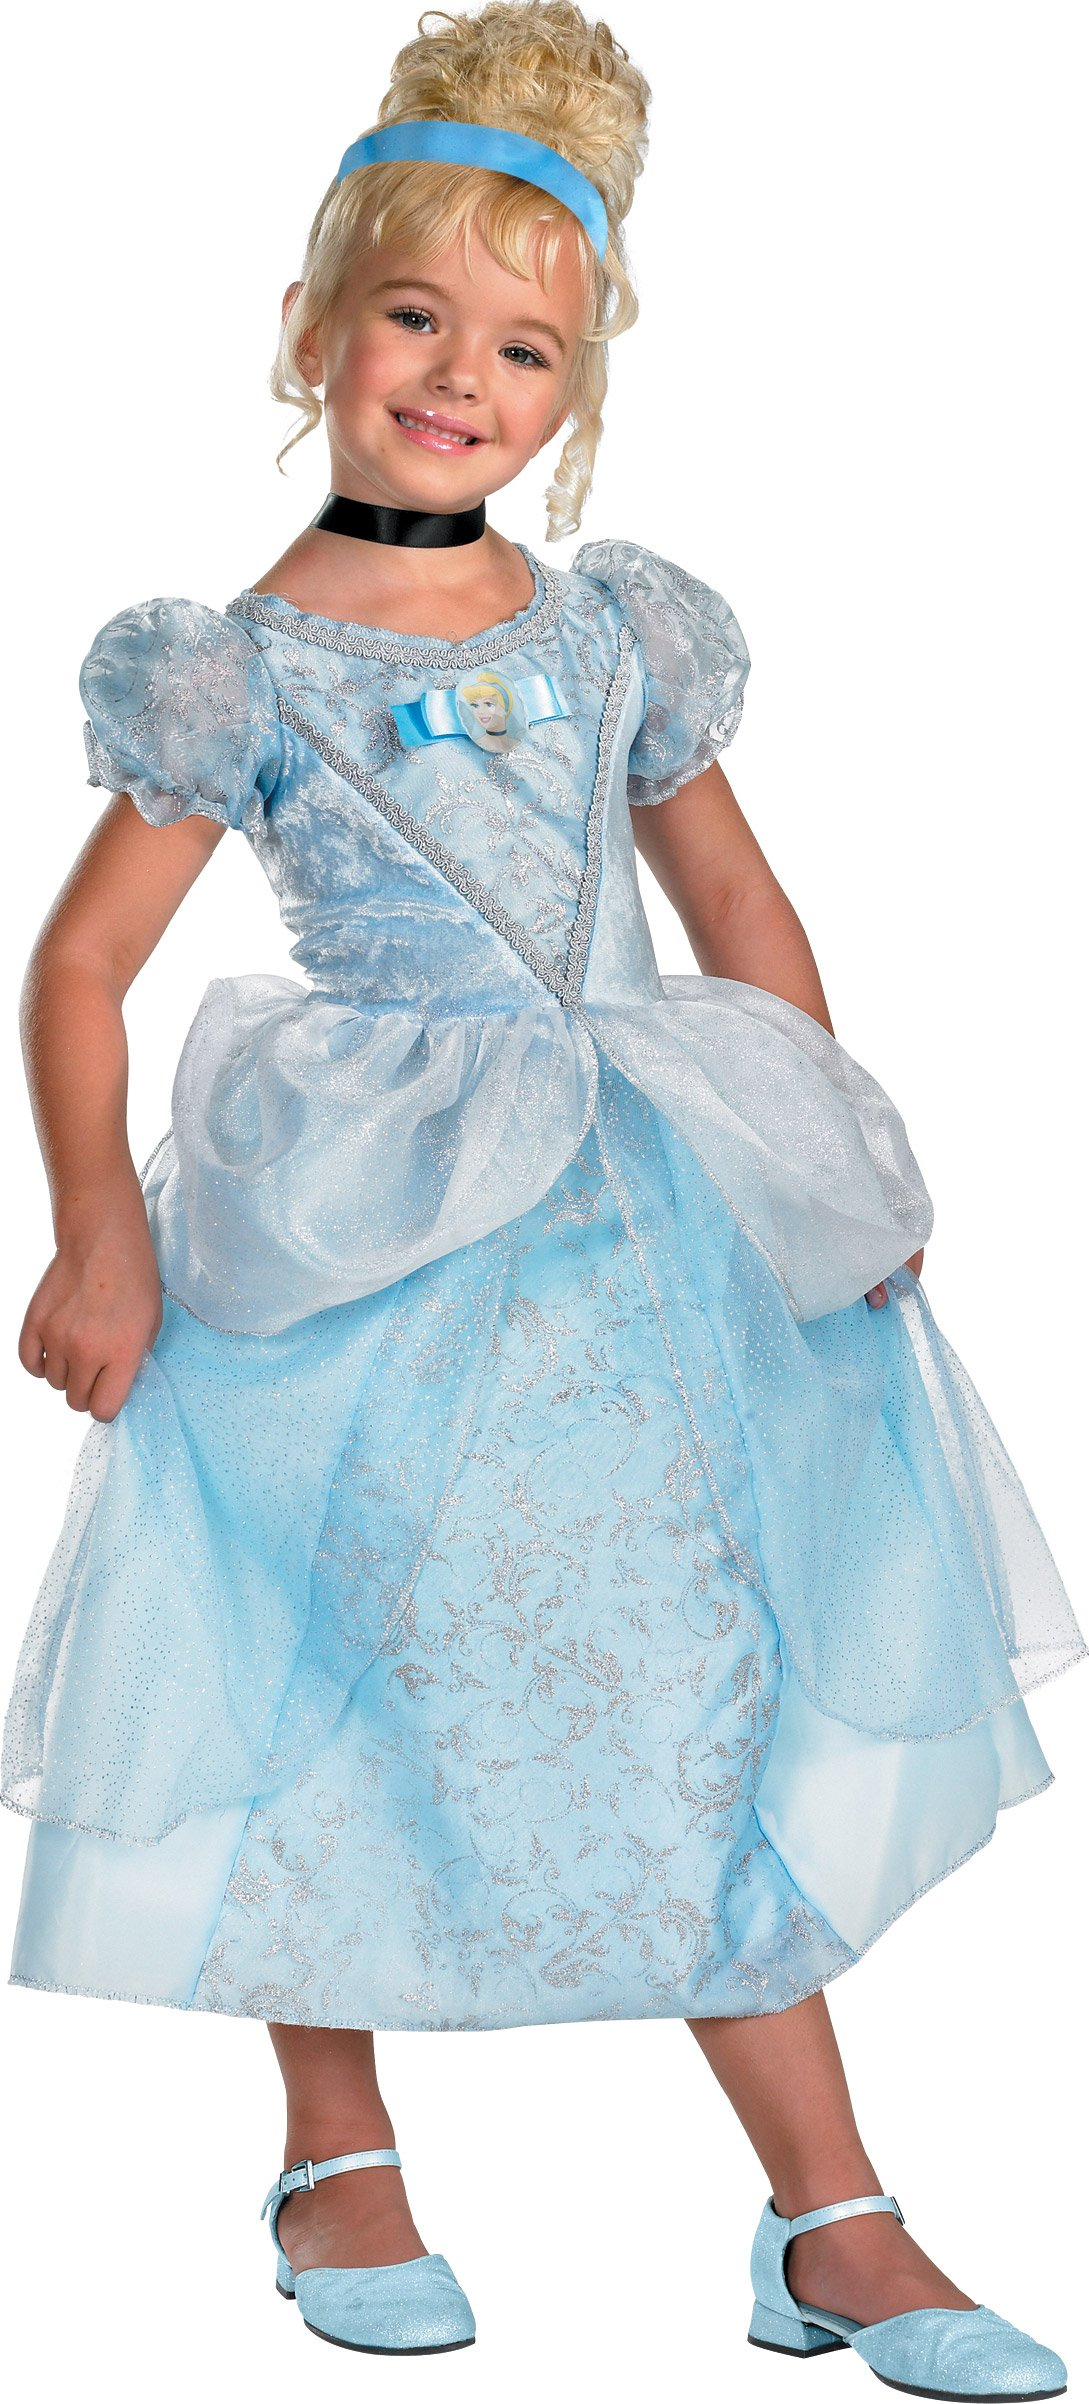 Disney Cinderella Deluxe Toddler / Child Costume